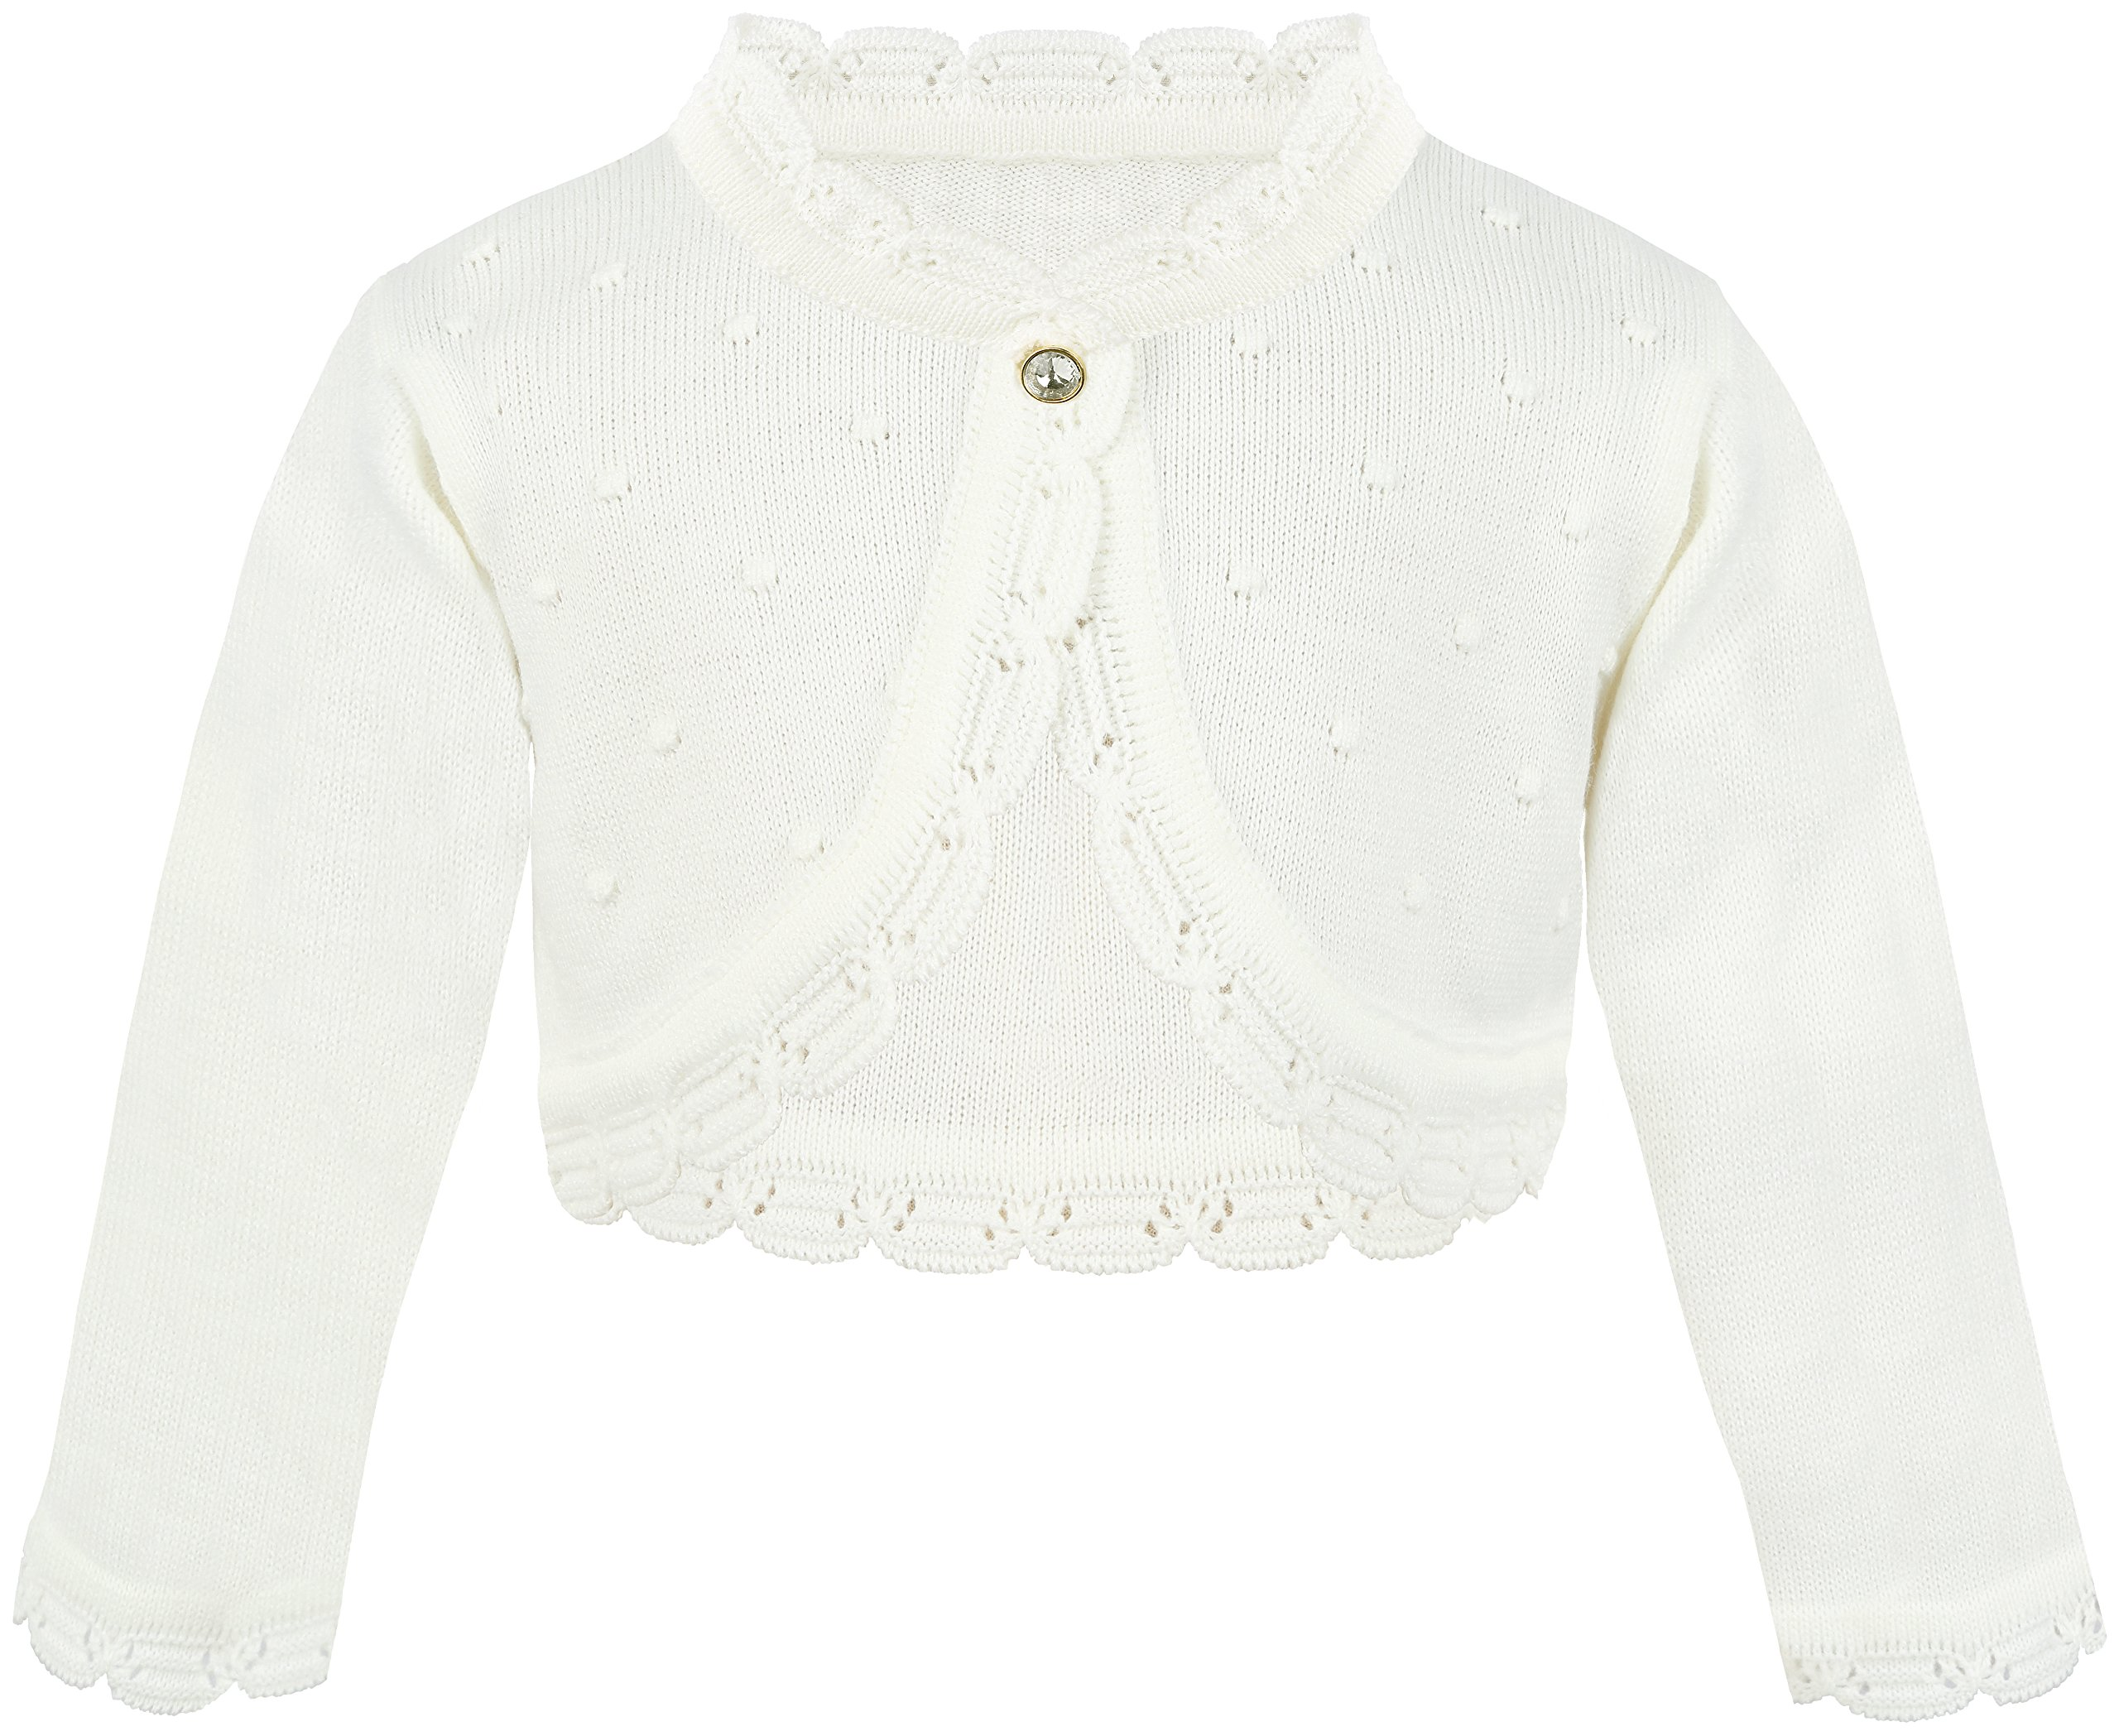 Lilax Baby Girls' Knit Long Sleeve Bolero Cardigan Shrug 6-9 Months Cream